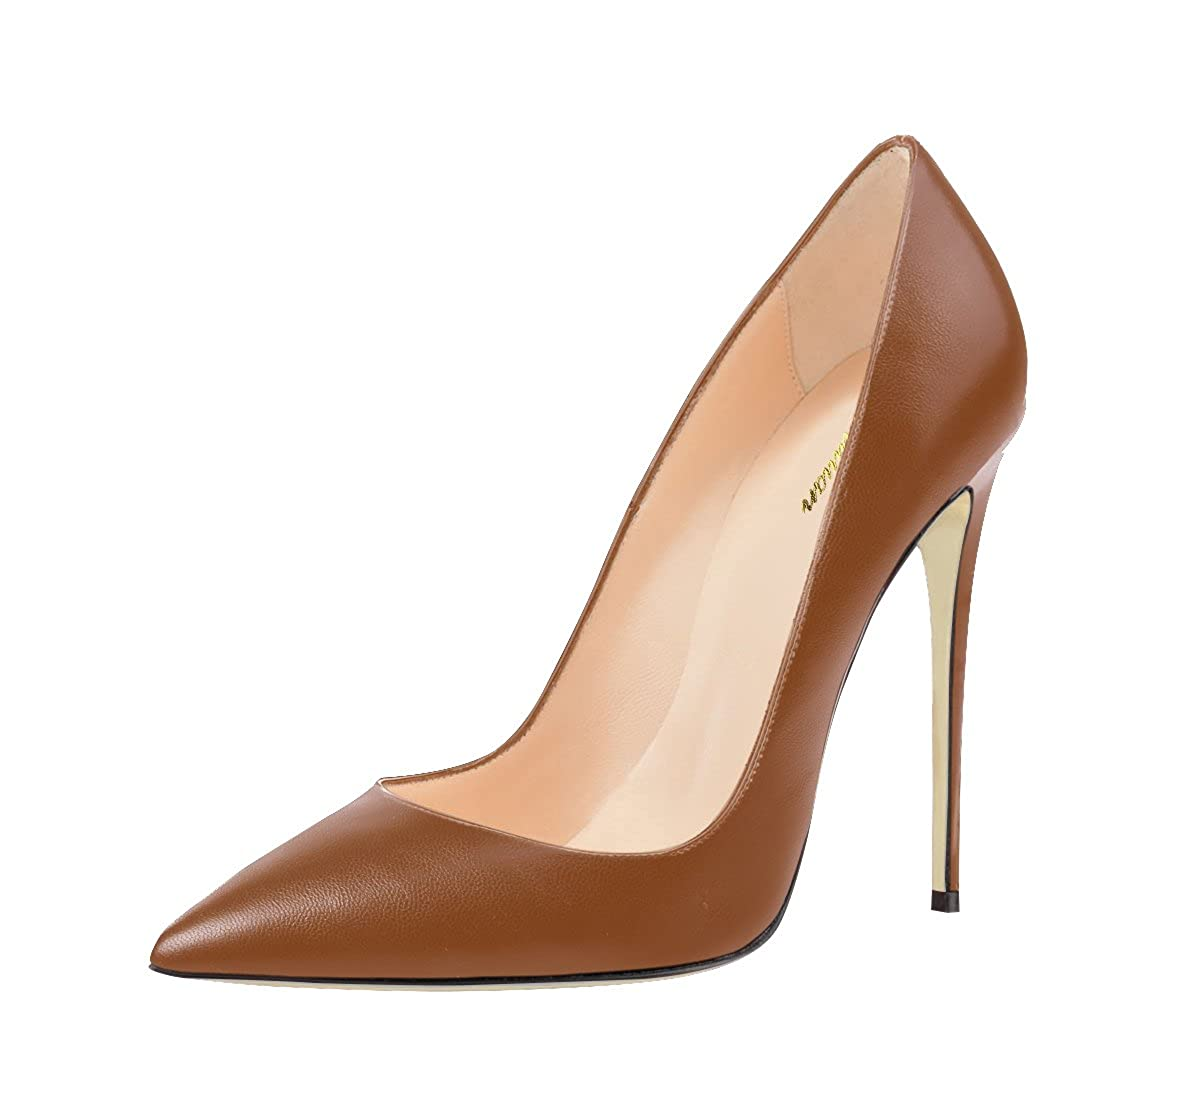 QianZuLian Womens Shoes The Shallow Mouth Stiletto Heels Suitable for Office Party The Wedding Sienna US8.5